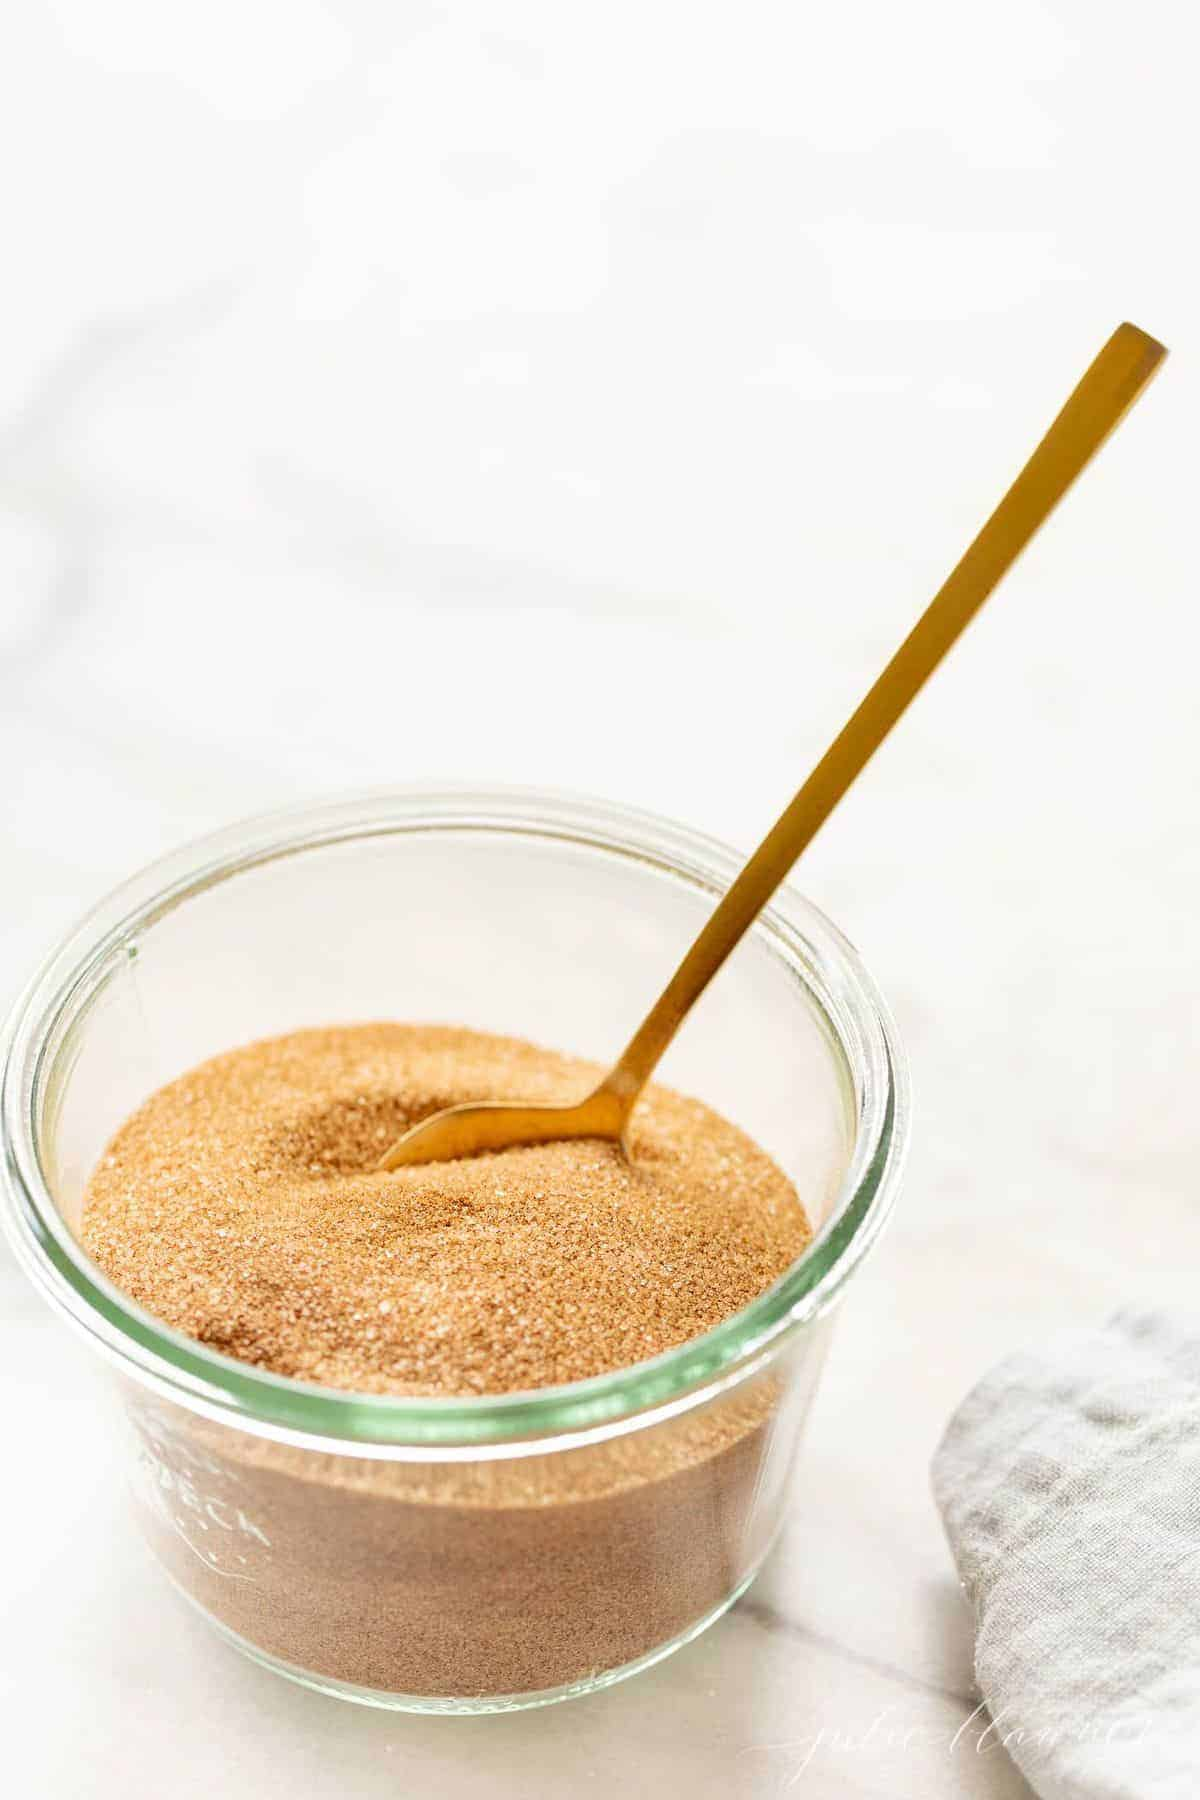 White marble surface, clear glass jar of cinnamon sugar recipe with gold spoon sticking up.